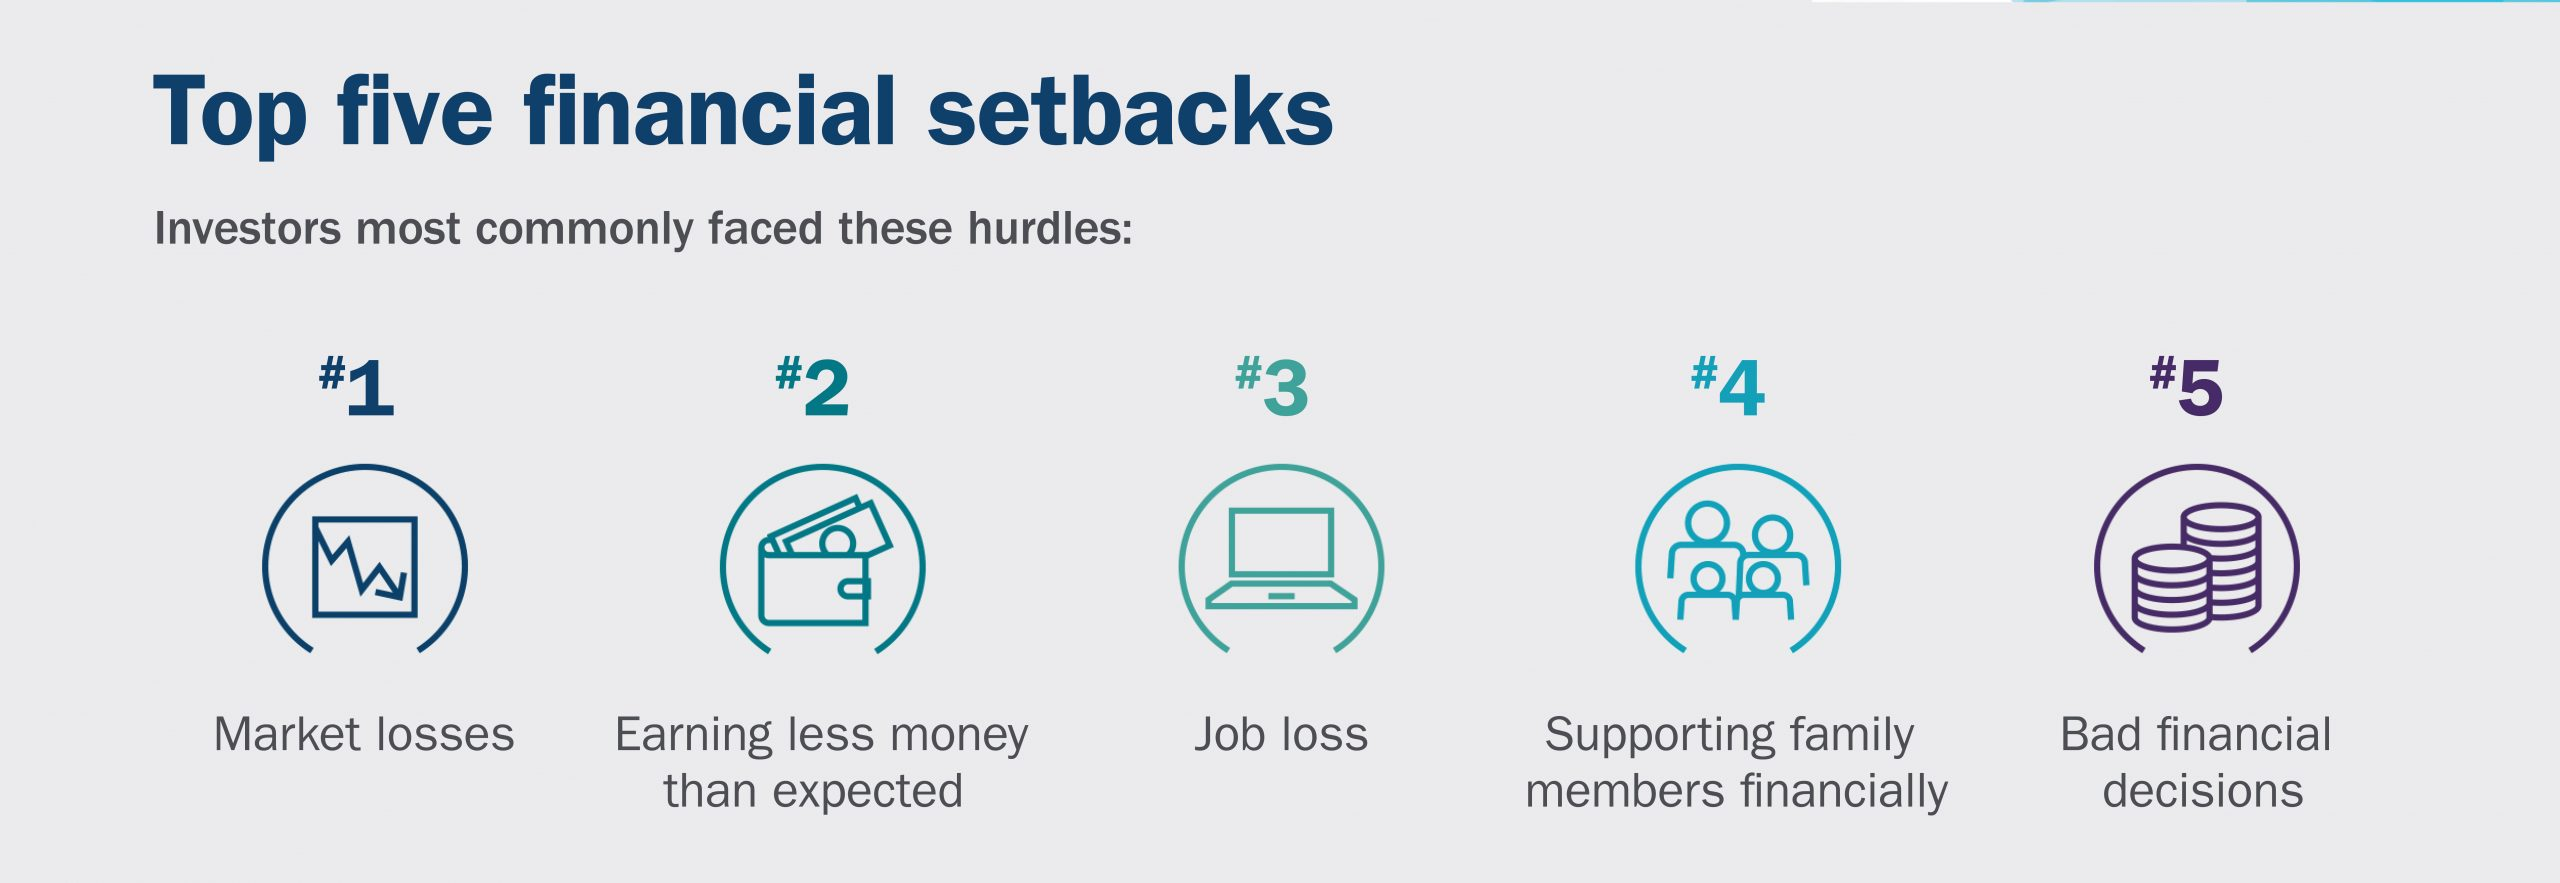 Financial setbacks: top five